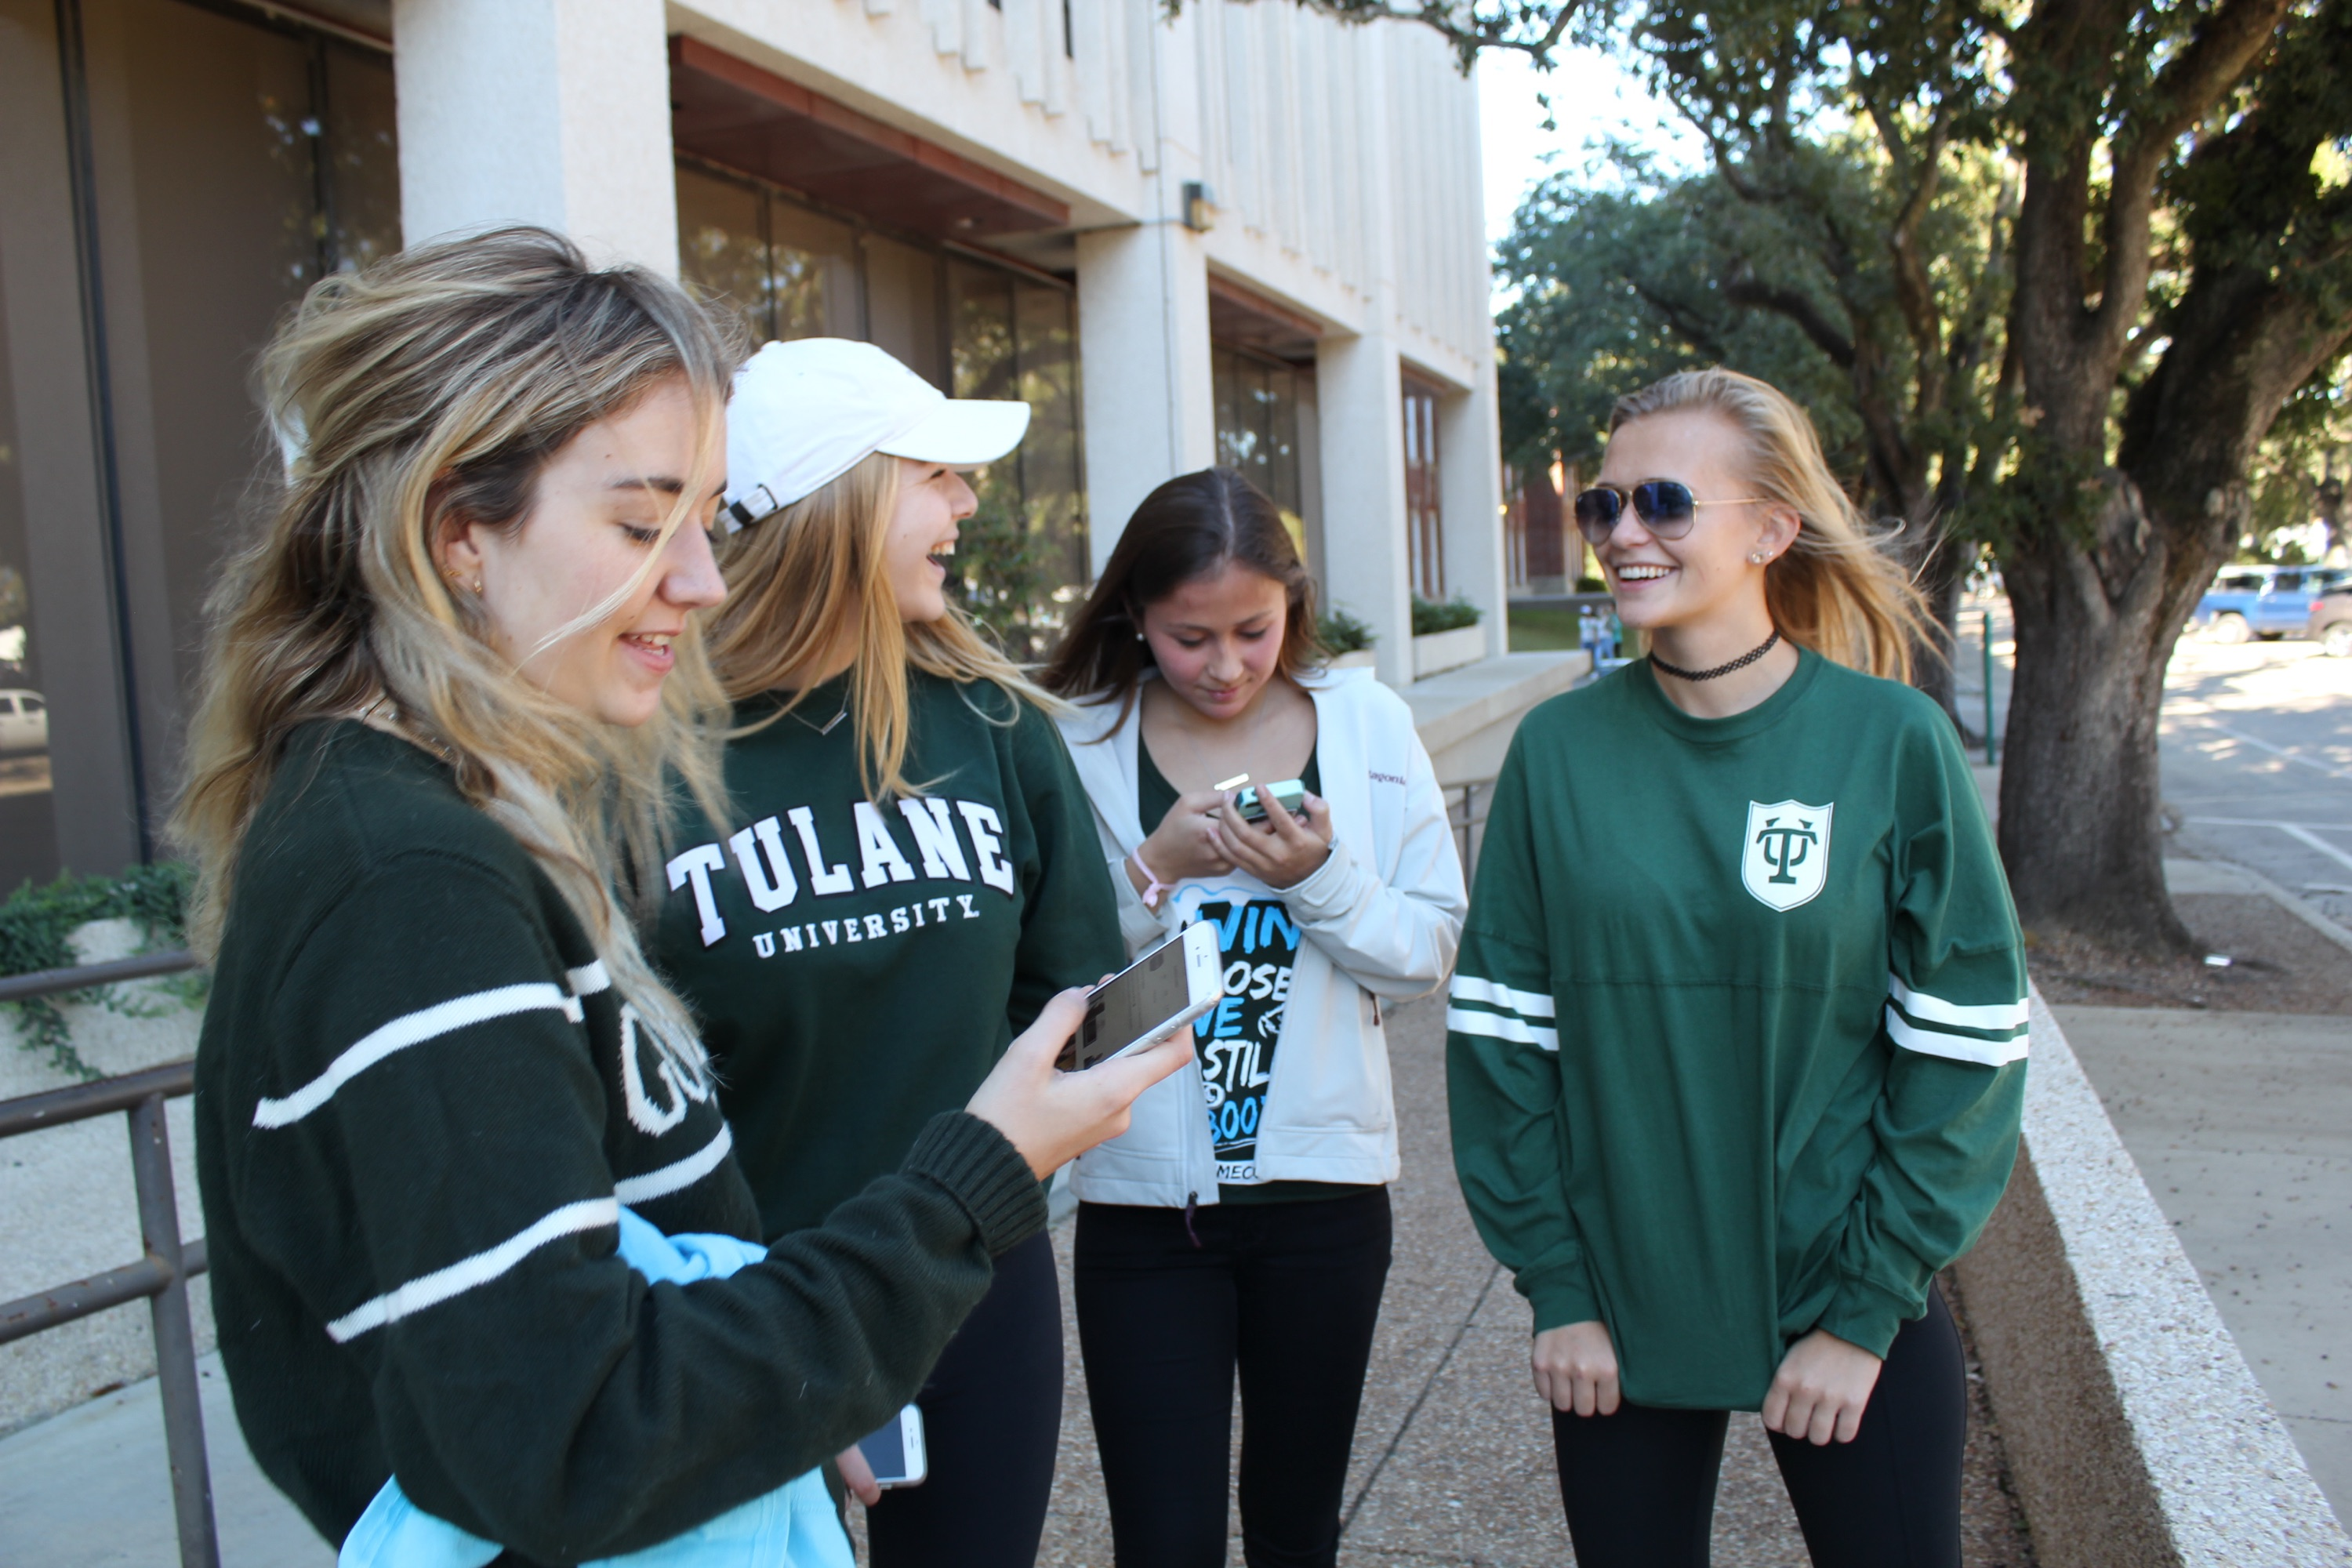 a73e7f30d7d8 DIY Game-Day Tees to Spice Up Your Tailgate Style - The Crescent: Tulane's  Lifestyle Magazine